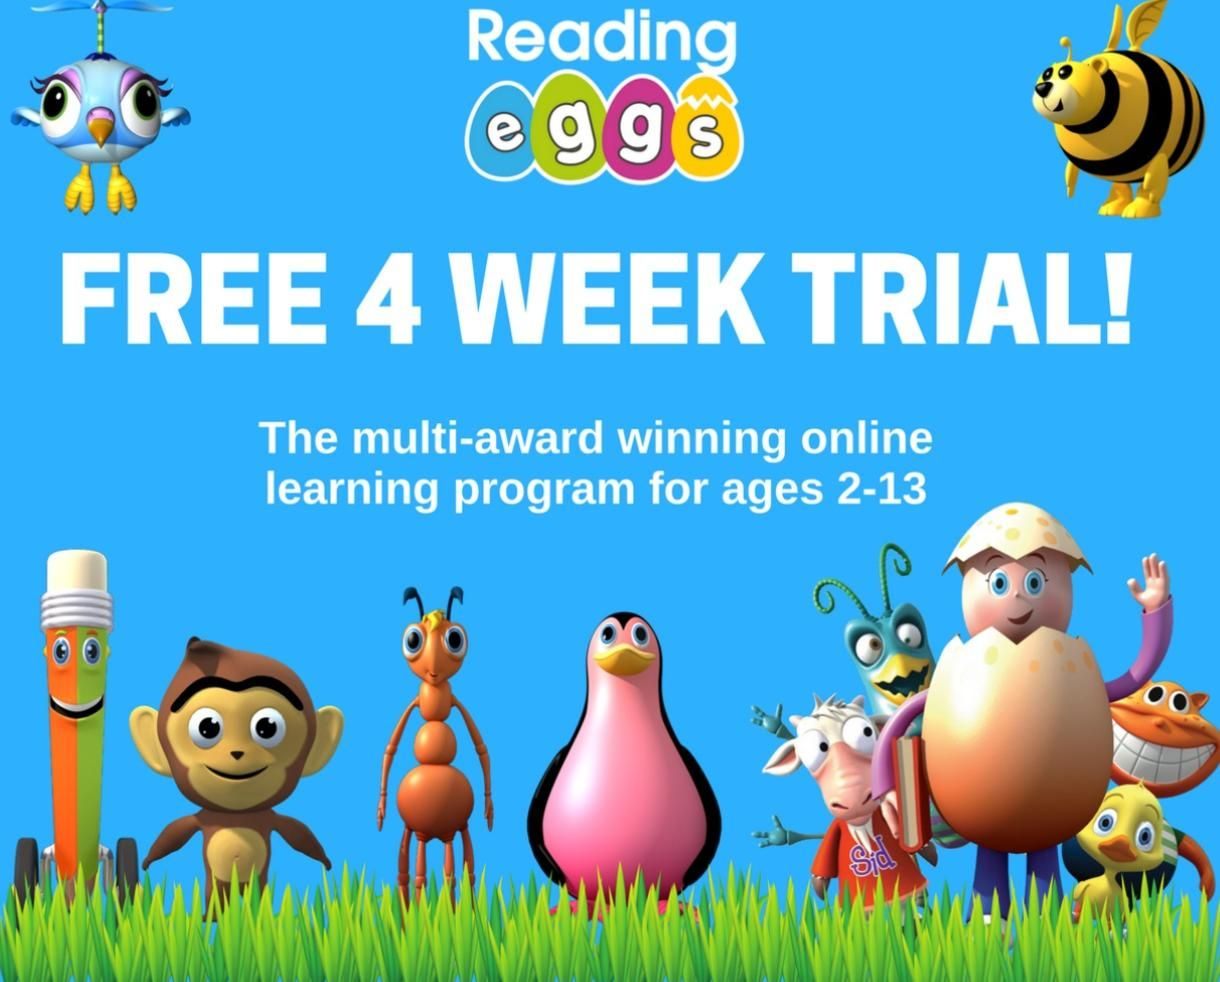 Learn To Read In 4 Weeks Free With Reading Eggs